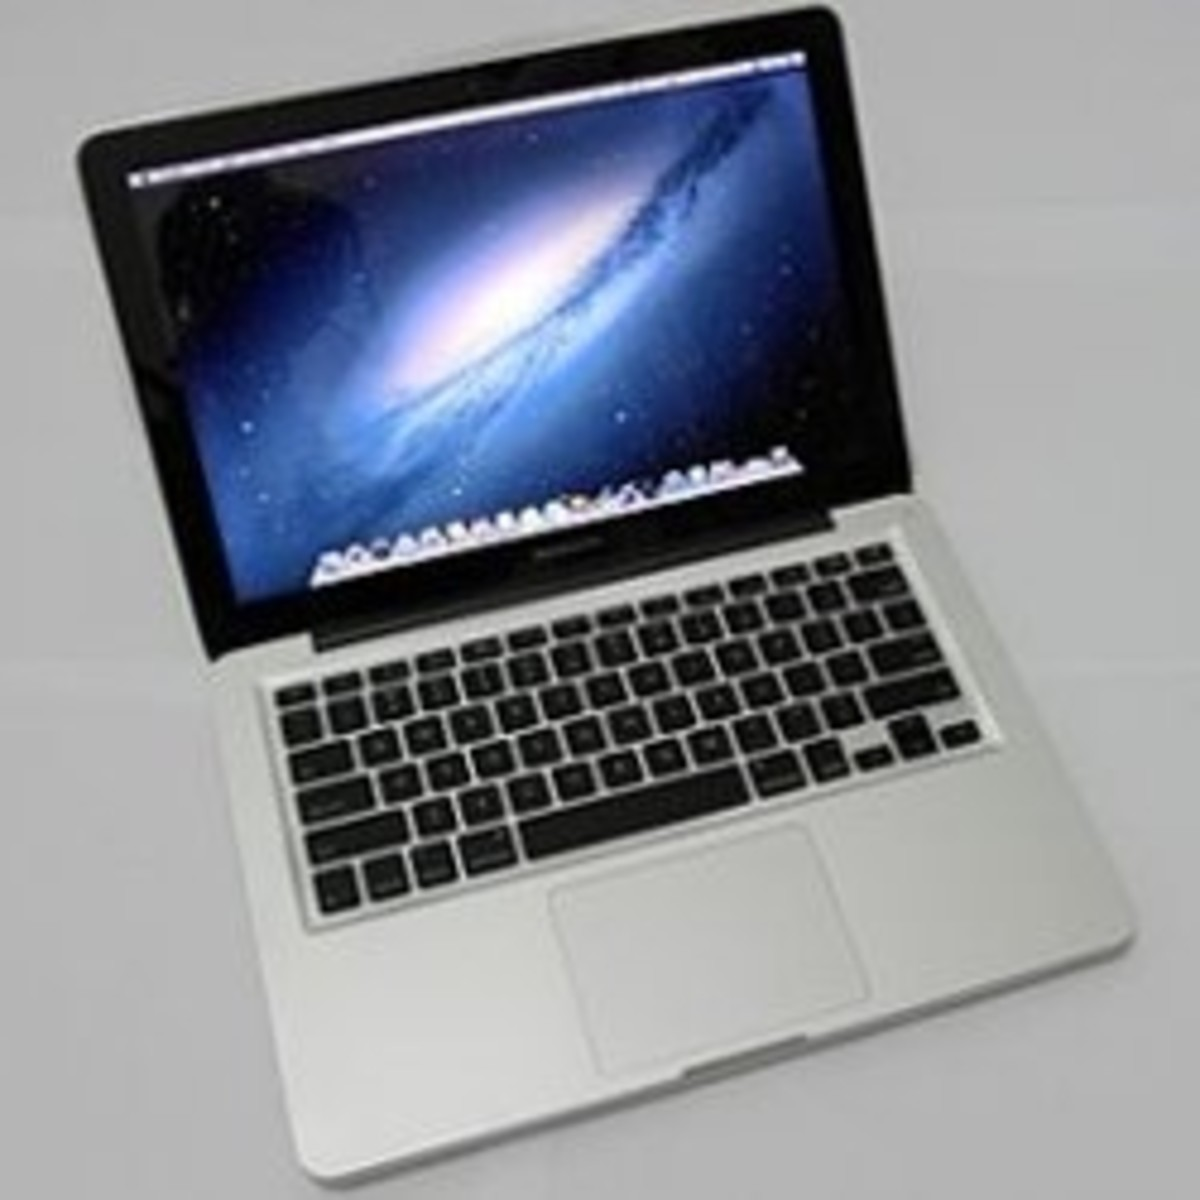 10 Things You Should Know About The Apple MacBook Pro